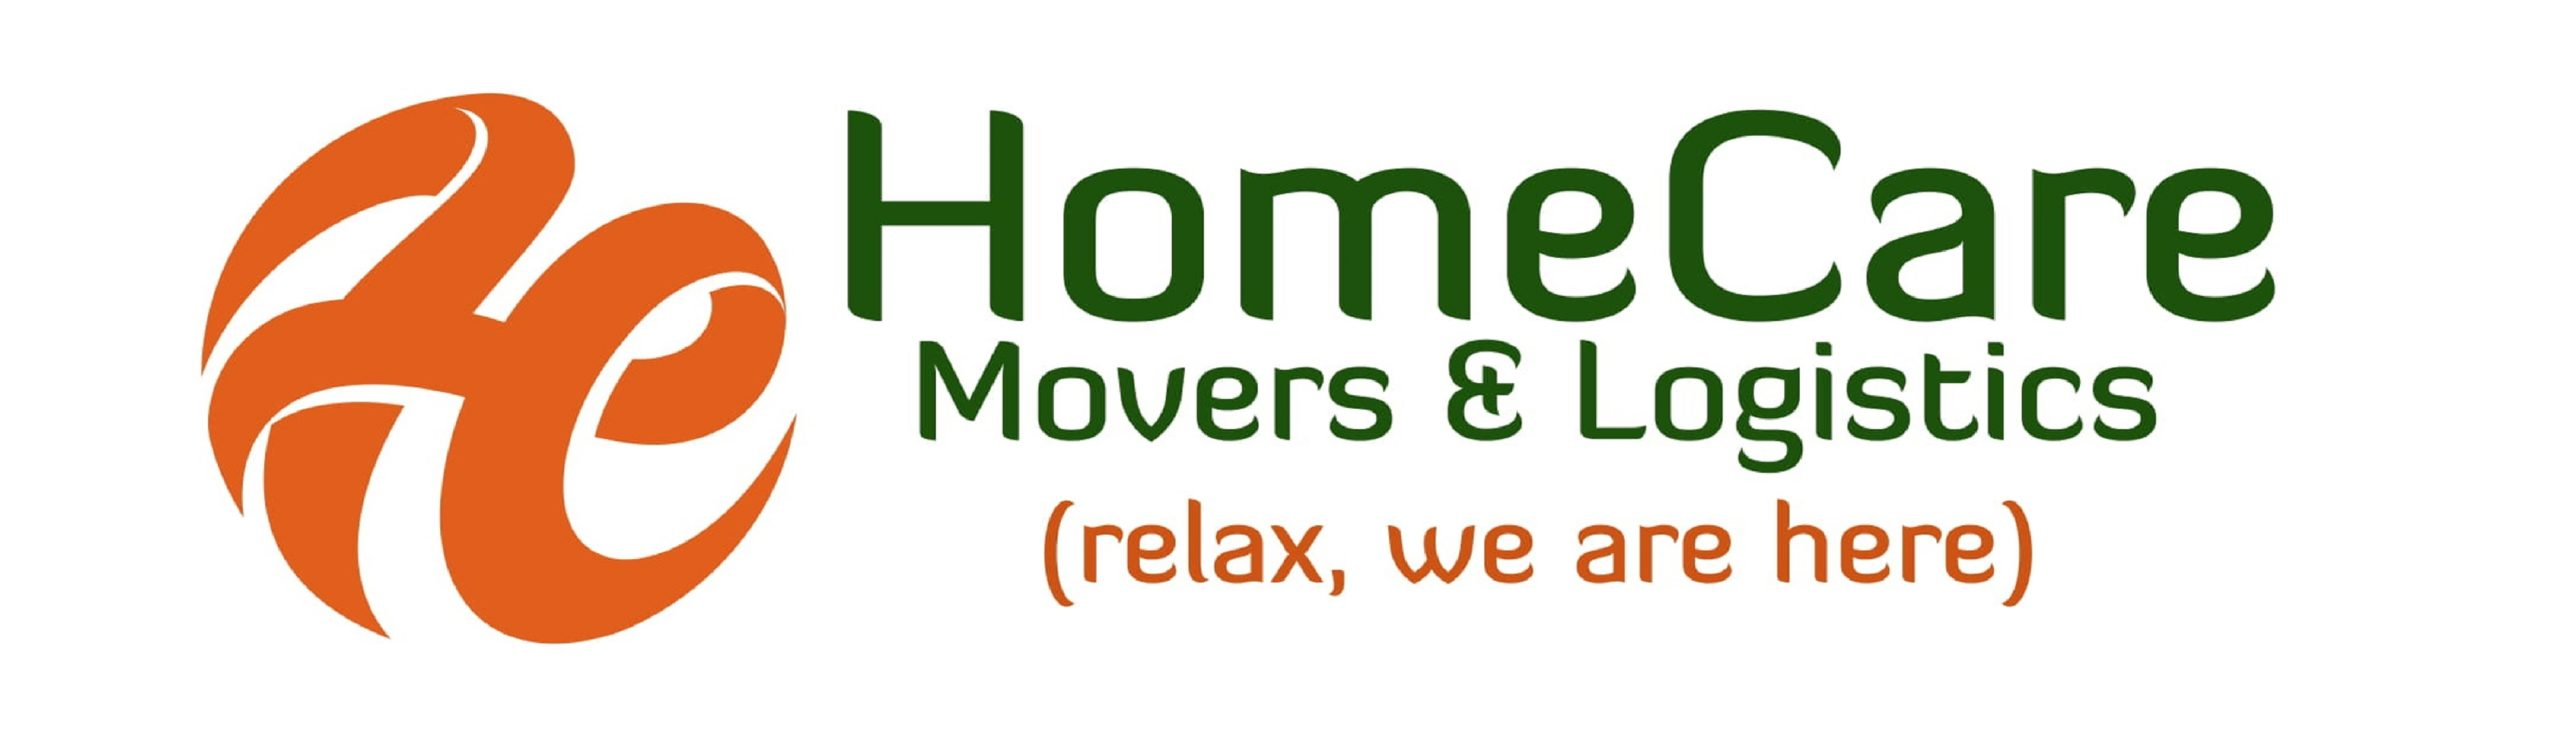 Homecare Movers & Logistics Pune